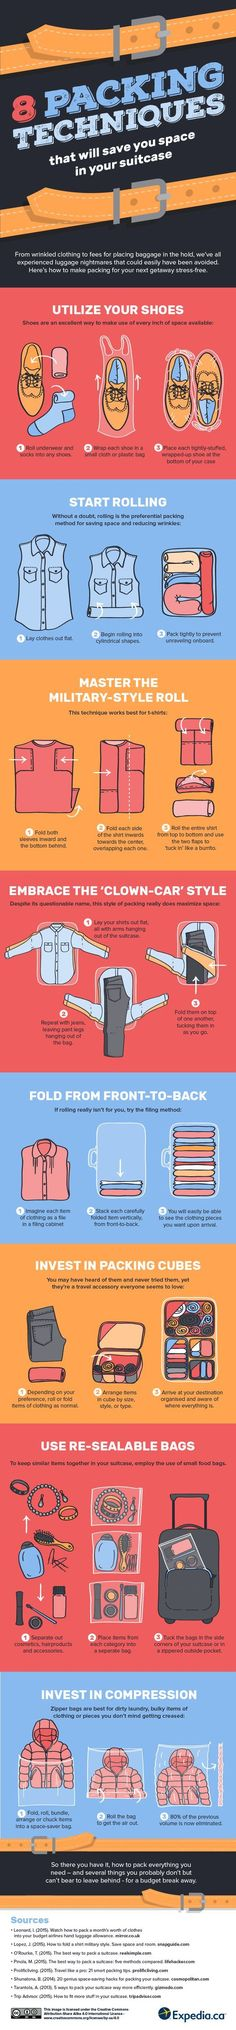 Grab ourbest selling Keep It Easy Packing Cubes today and get $5 OFF using code:SPACE